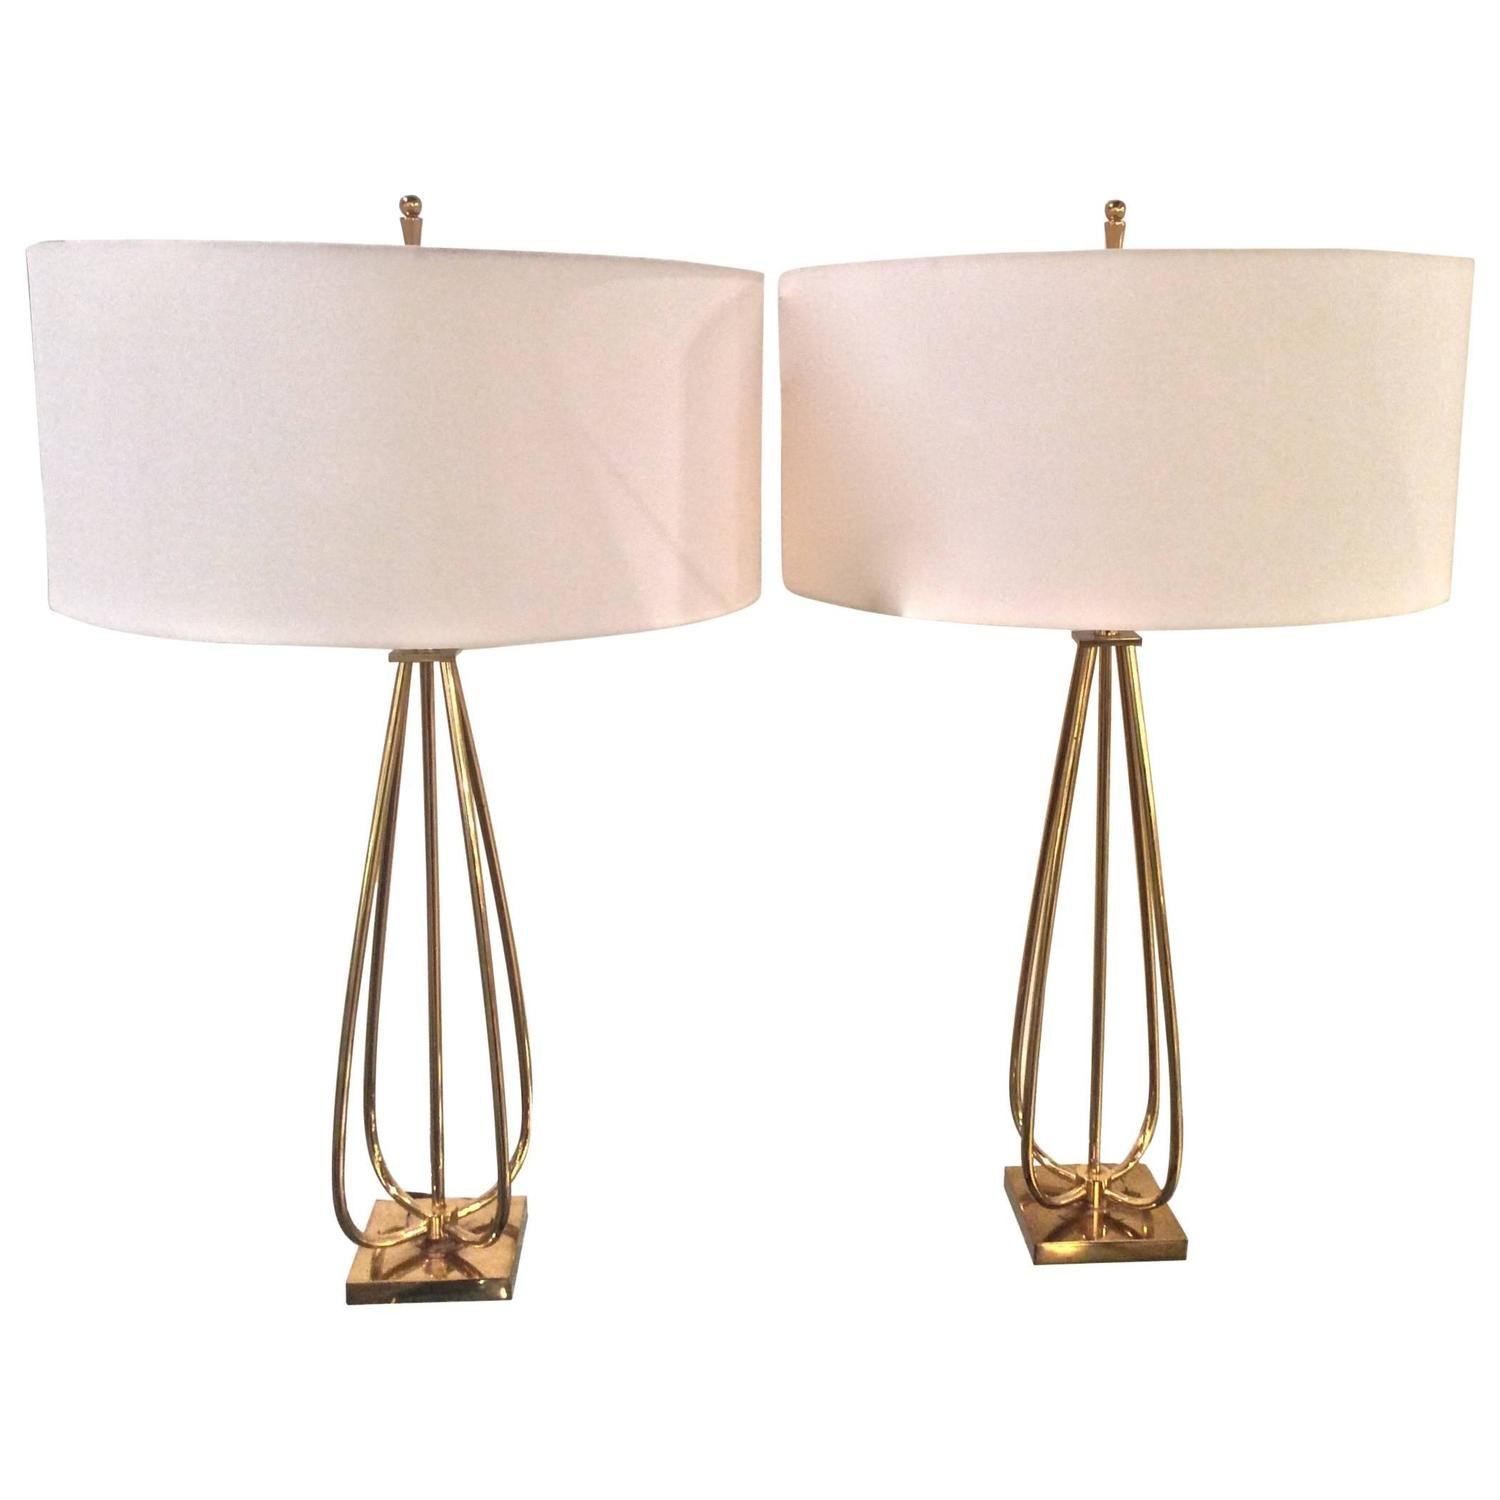 mid century modern brass table lamps at 1stdibs. Black Bedroom Furniture Sets. Home Design Ideas